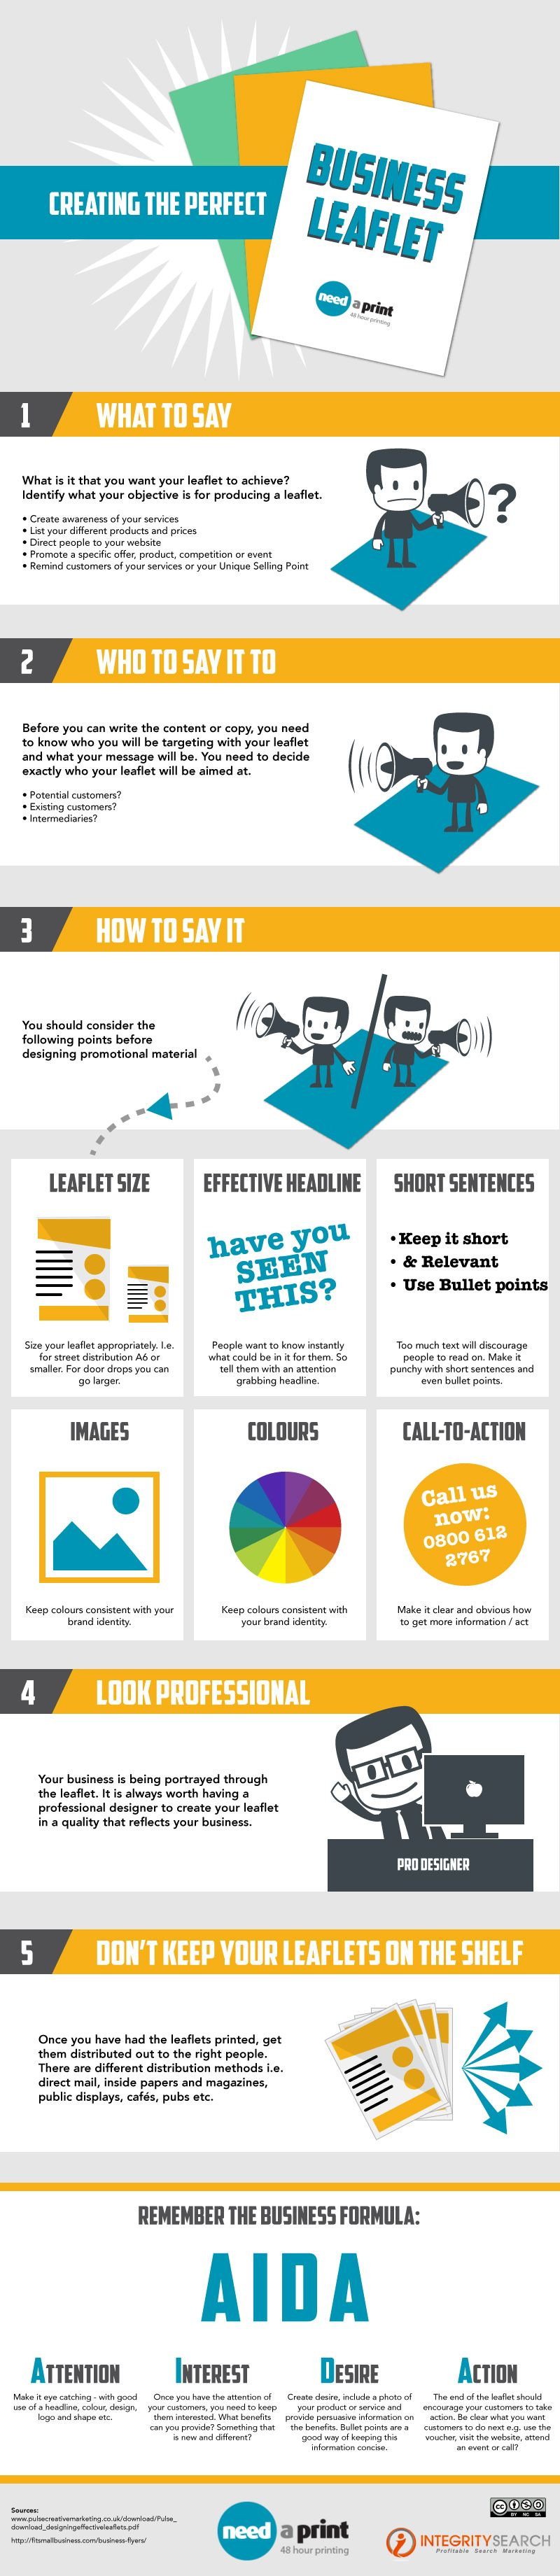 Creating The Perfect Business Leaflet